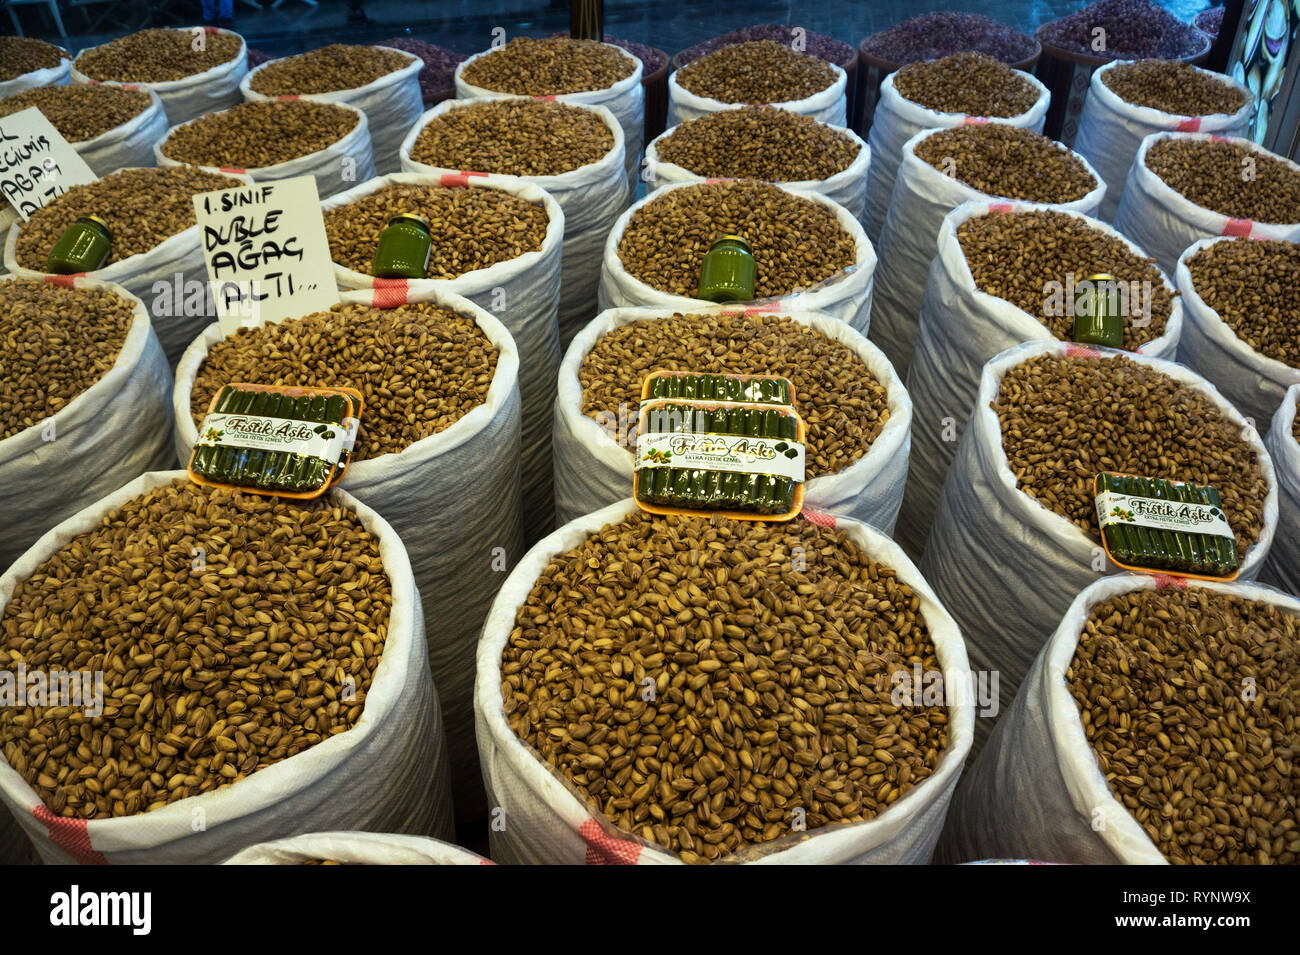 Pistachio is most famous agricultural product of Gaziantep and widely sold all around the city, Turkey. - Stock Image